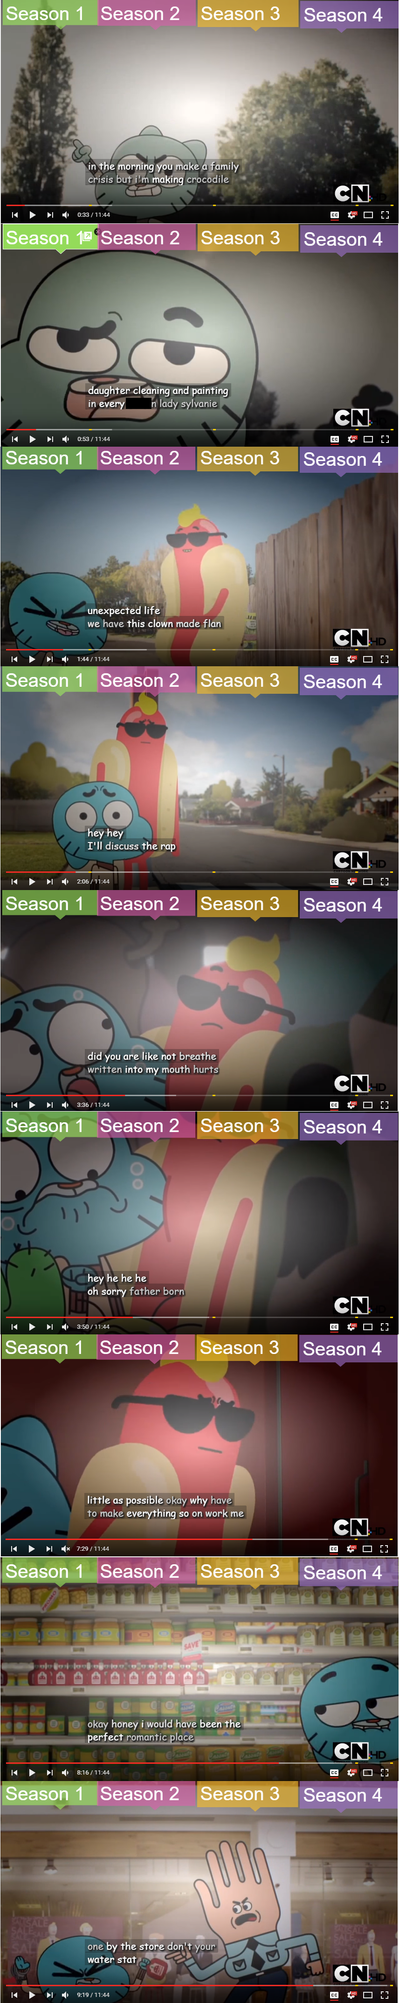 Subtitles Fail: Gumball's awkwardness by BlueAngelPower2003